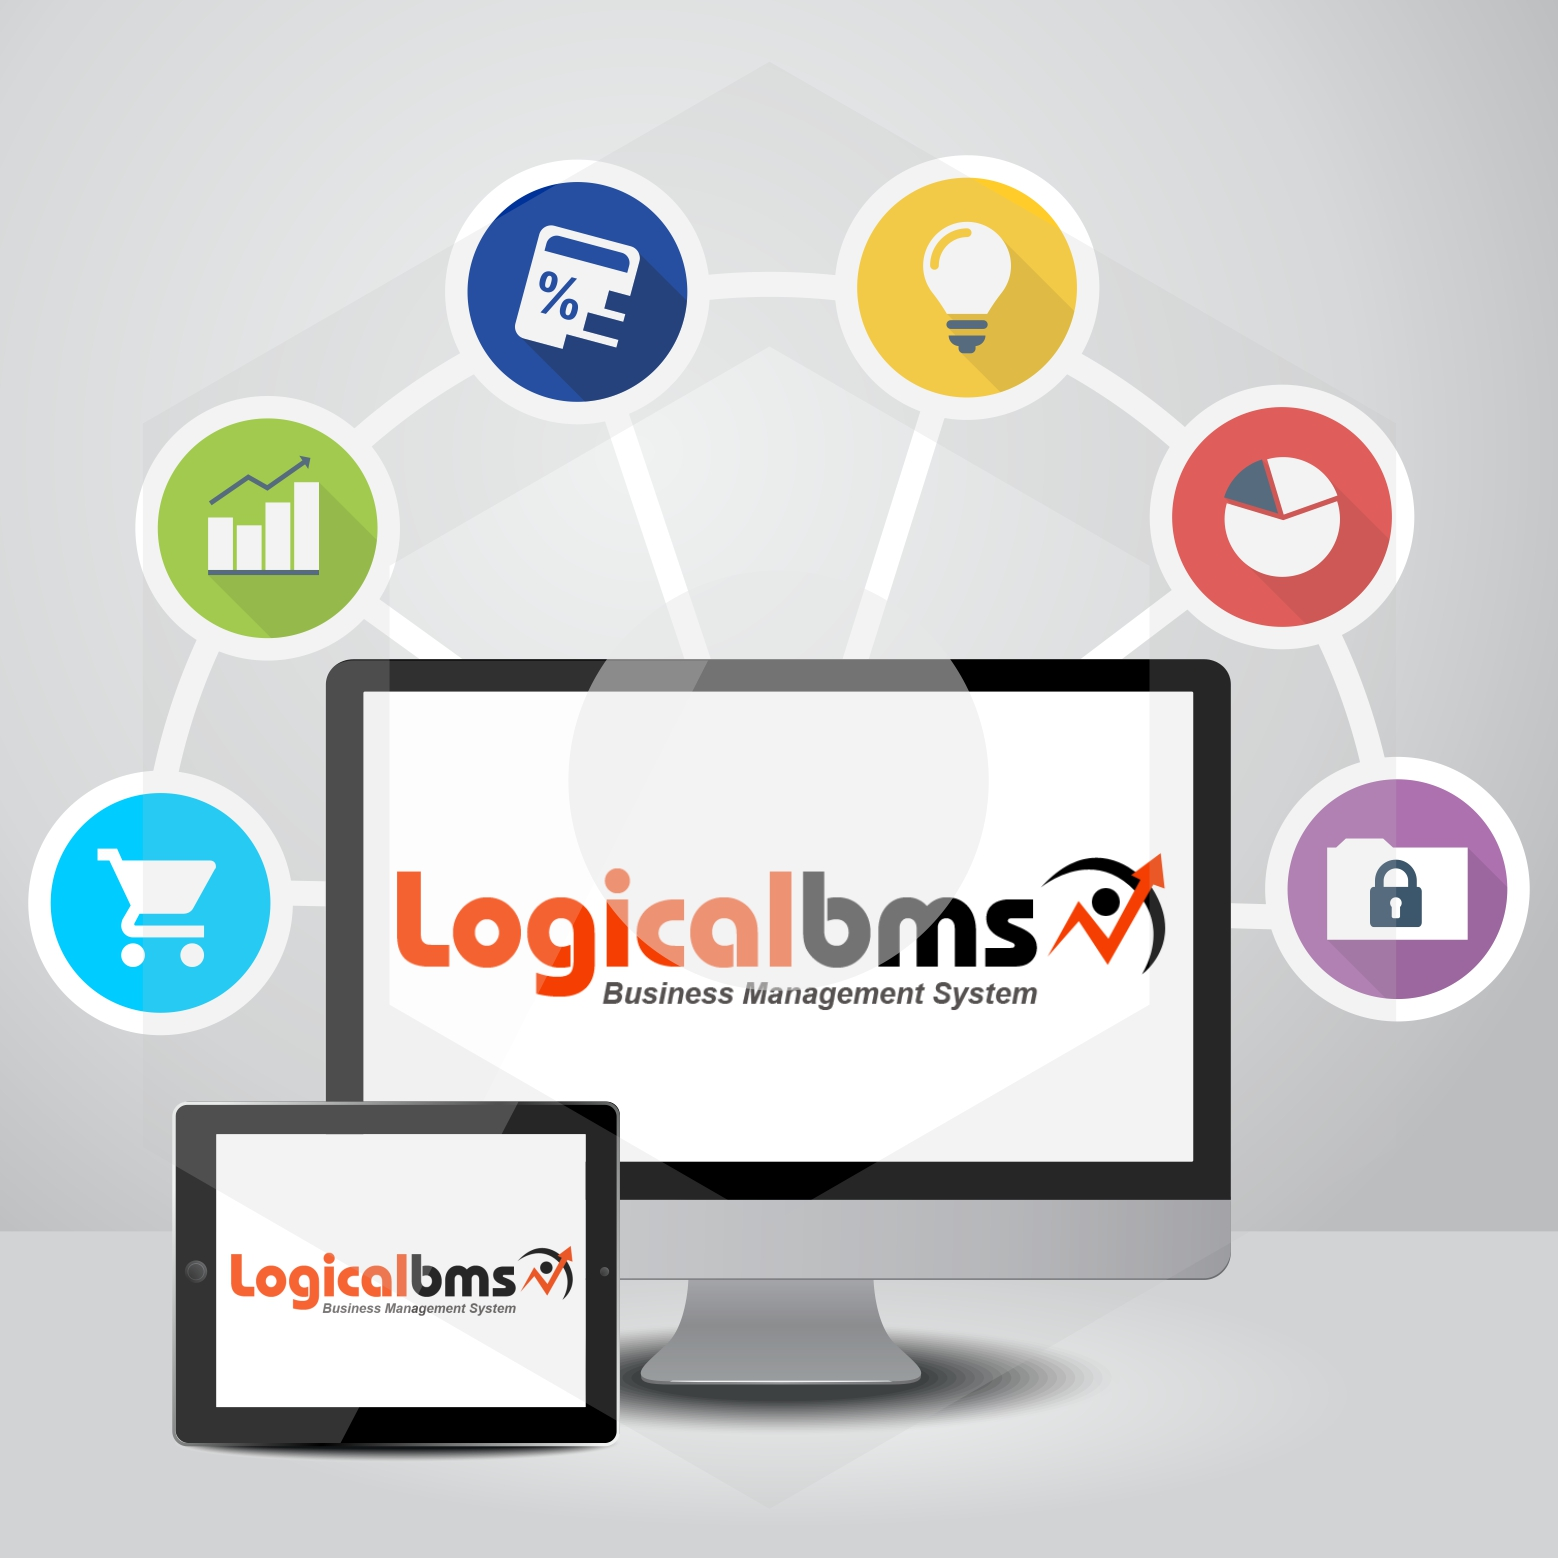 Logicaldna-logicalbms-product